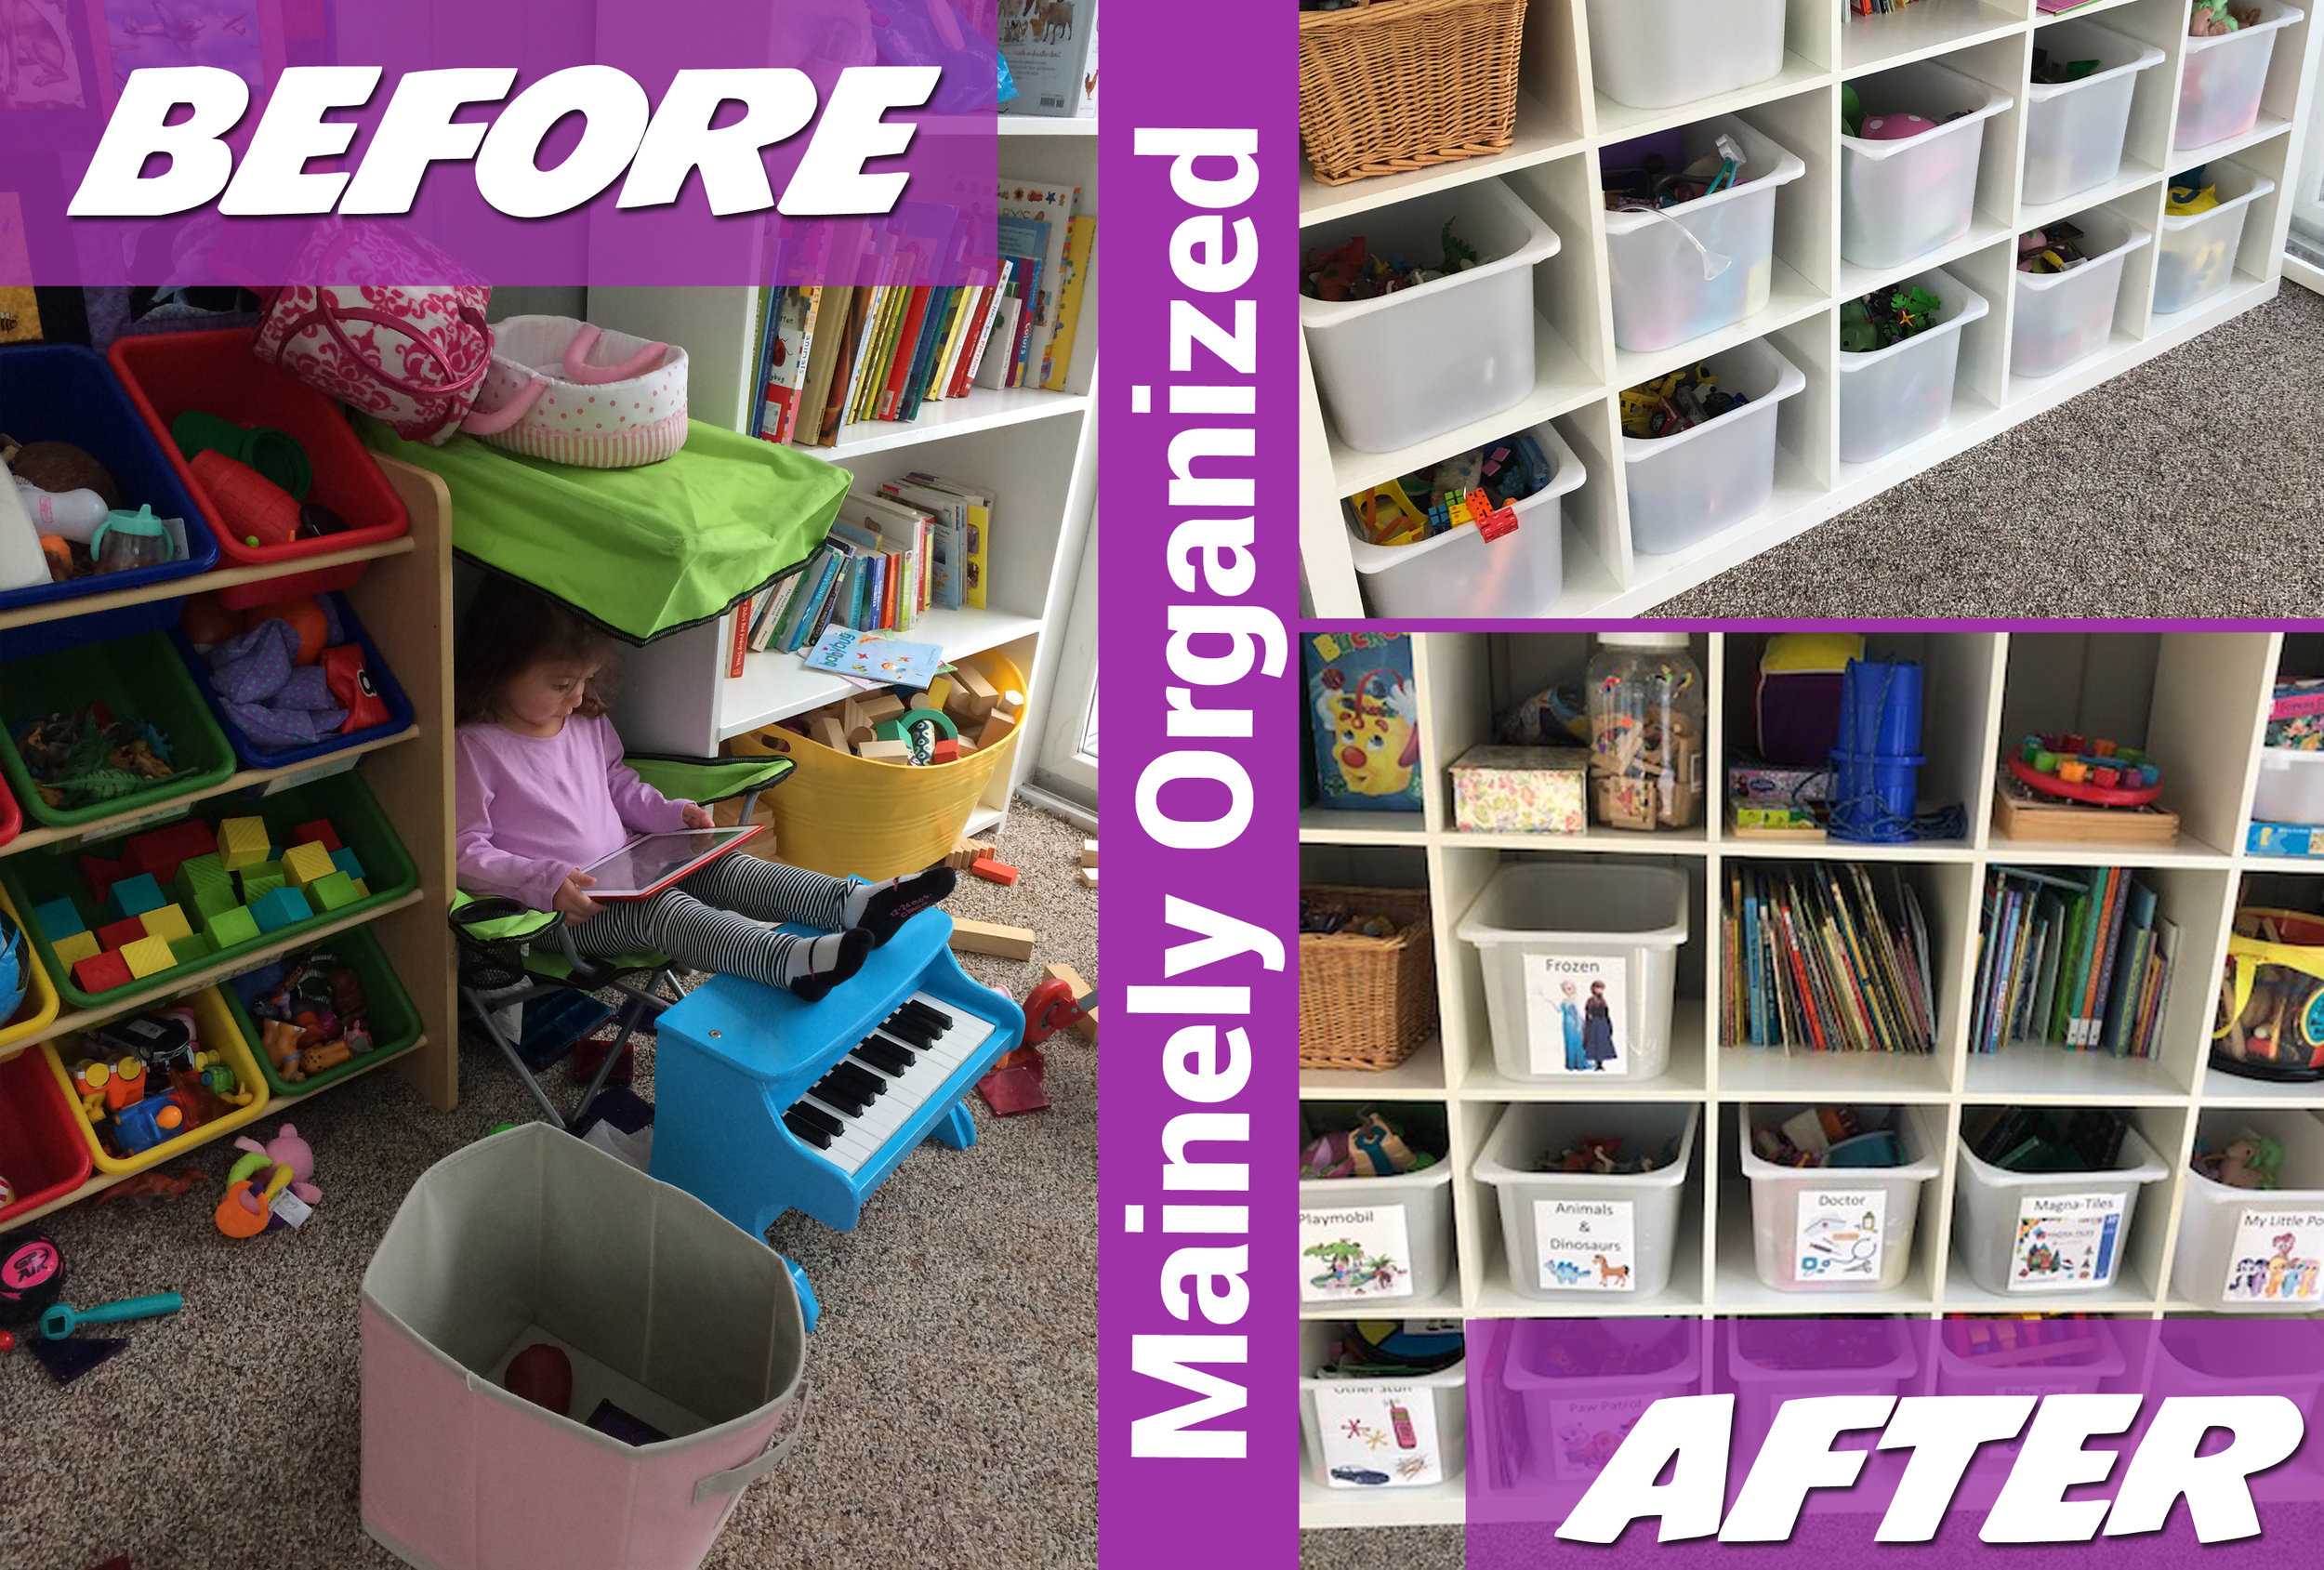 A toy room that needed some major organizing